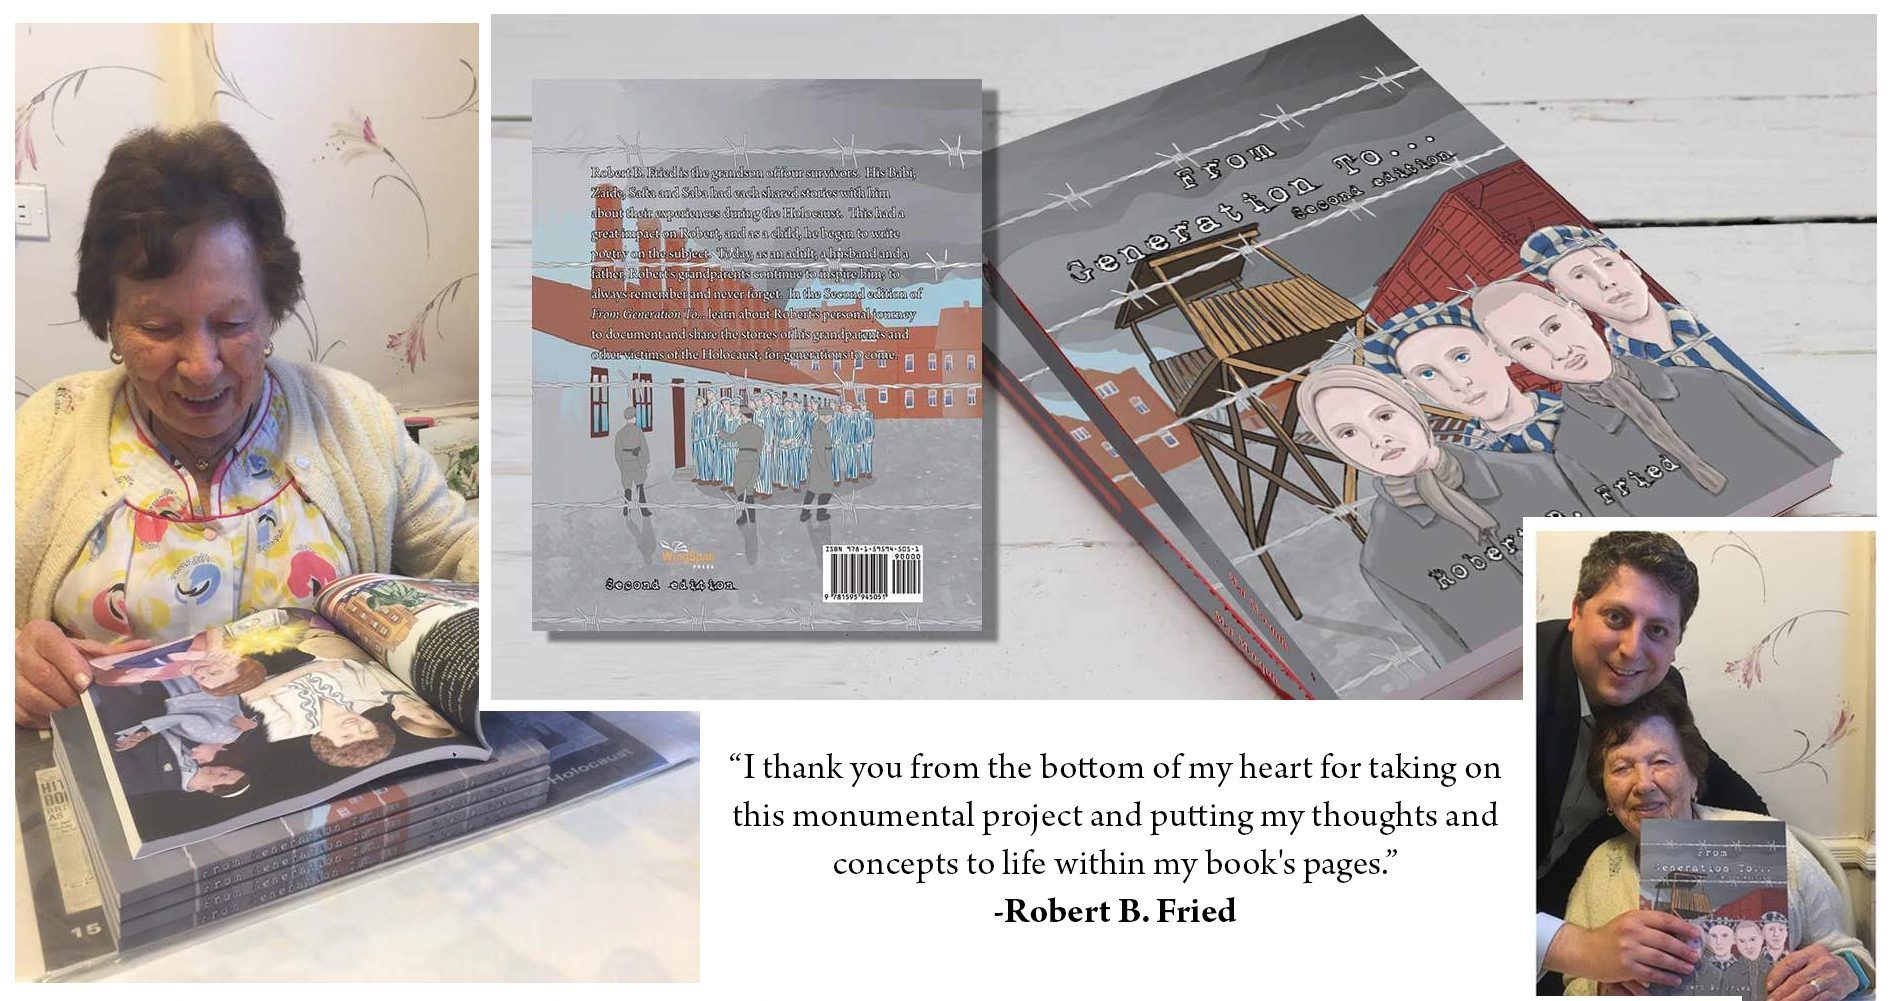 Book cover design and illustration for Author Robert Fried